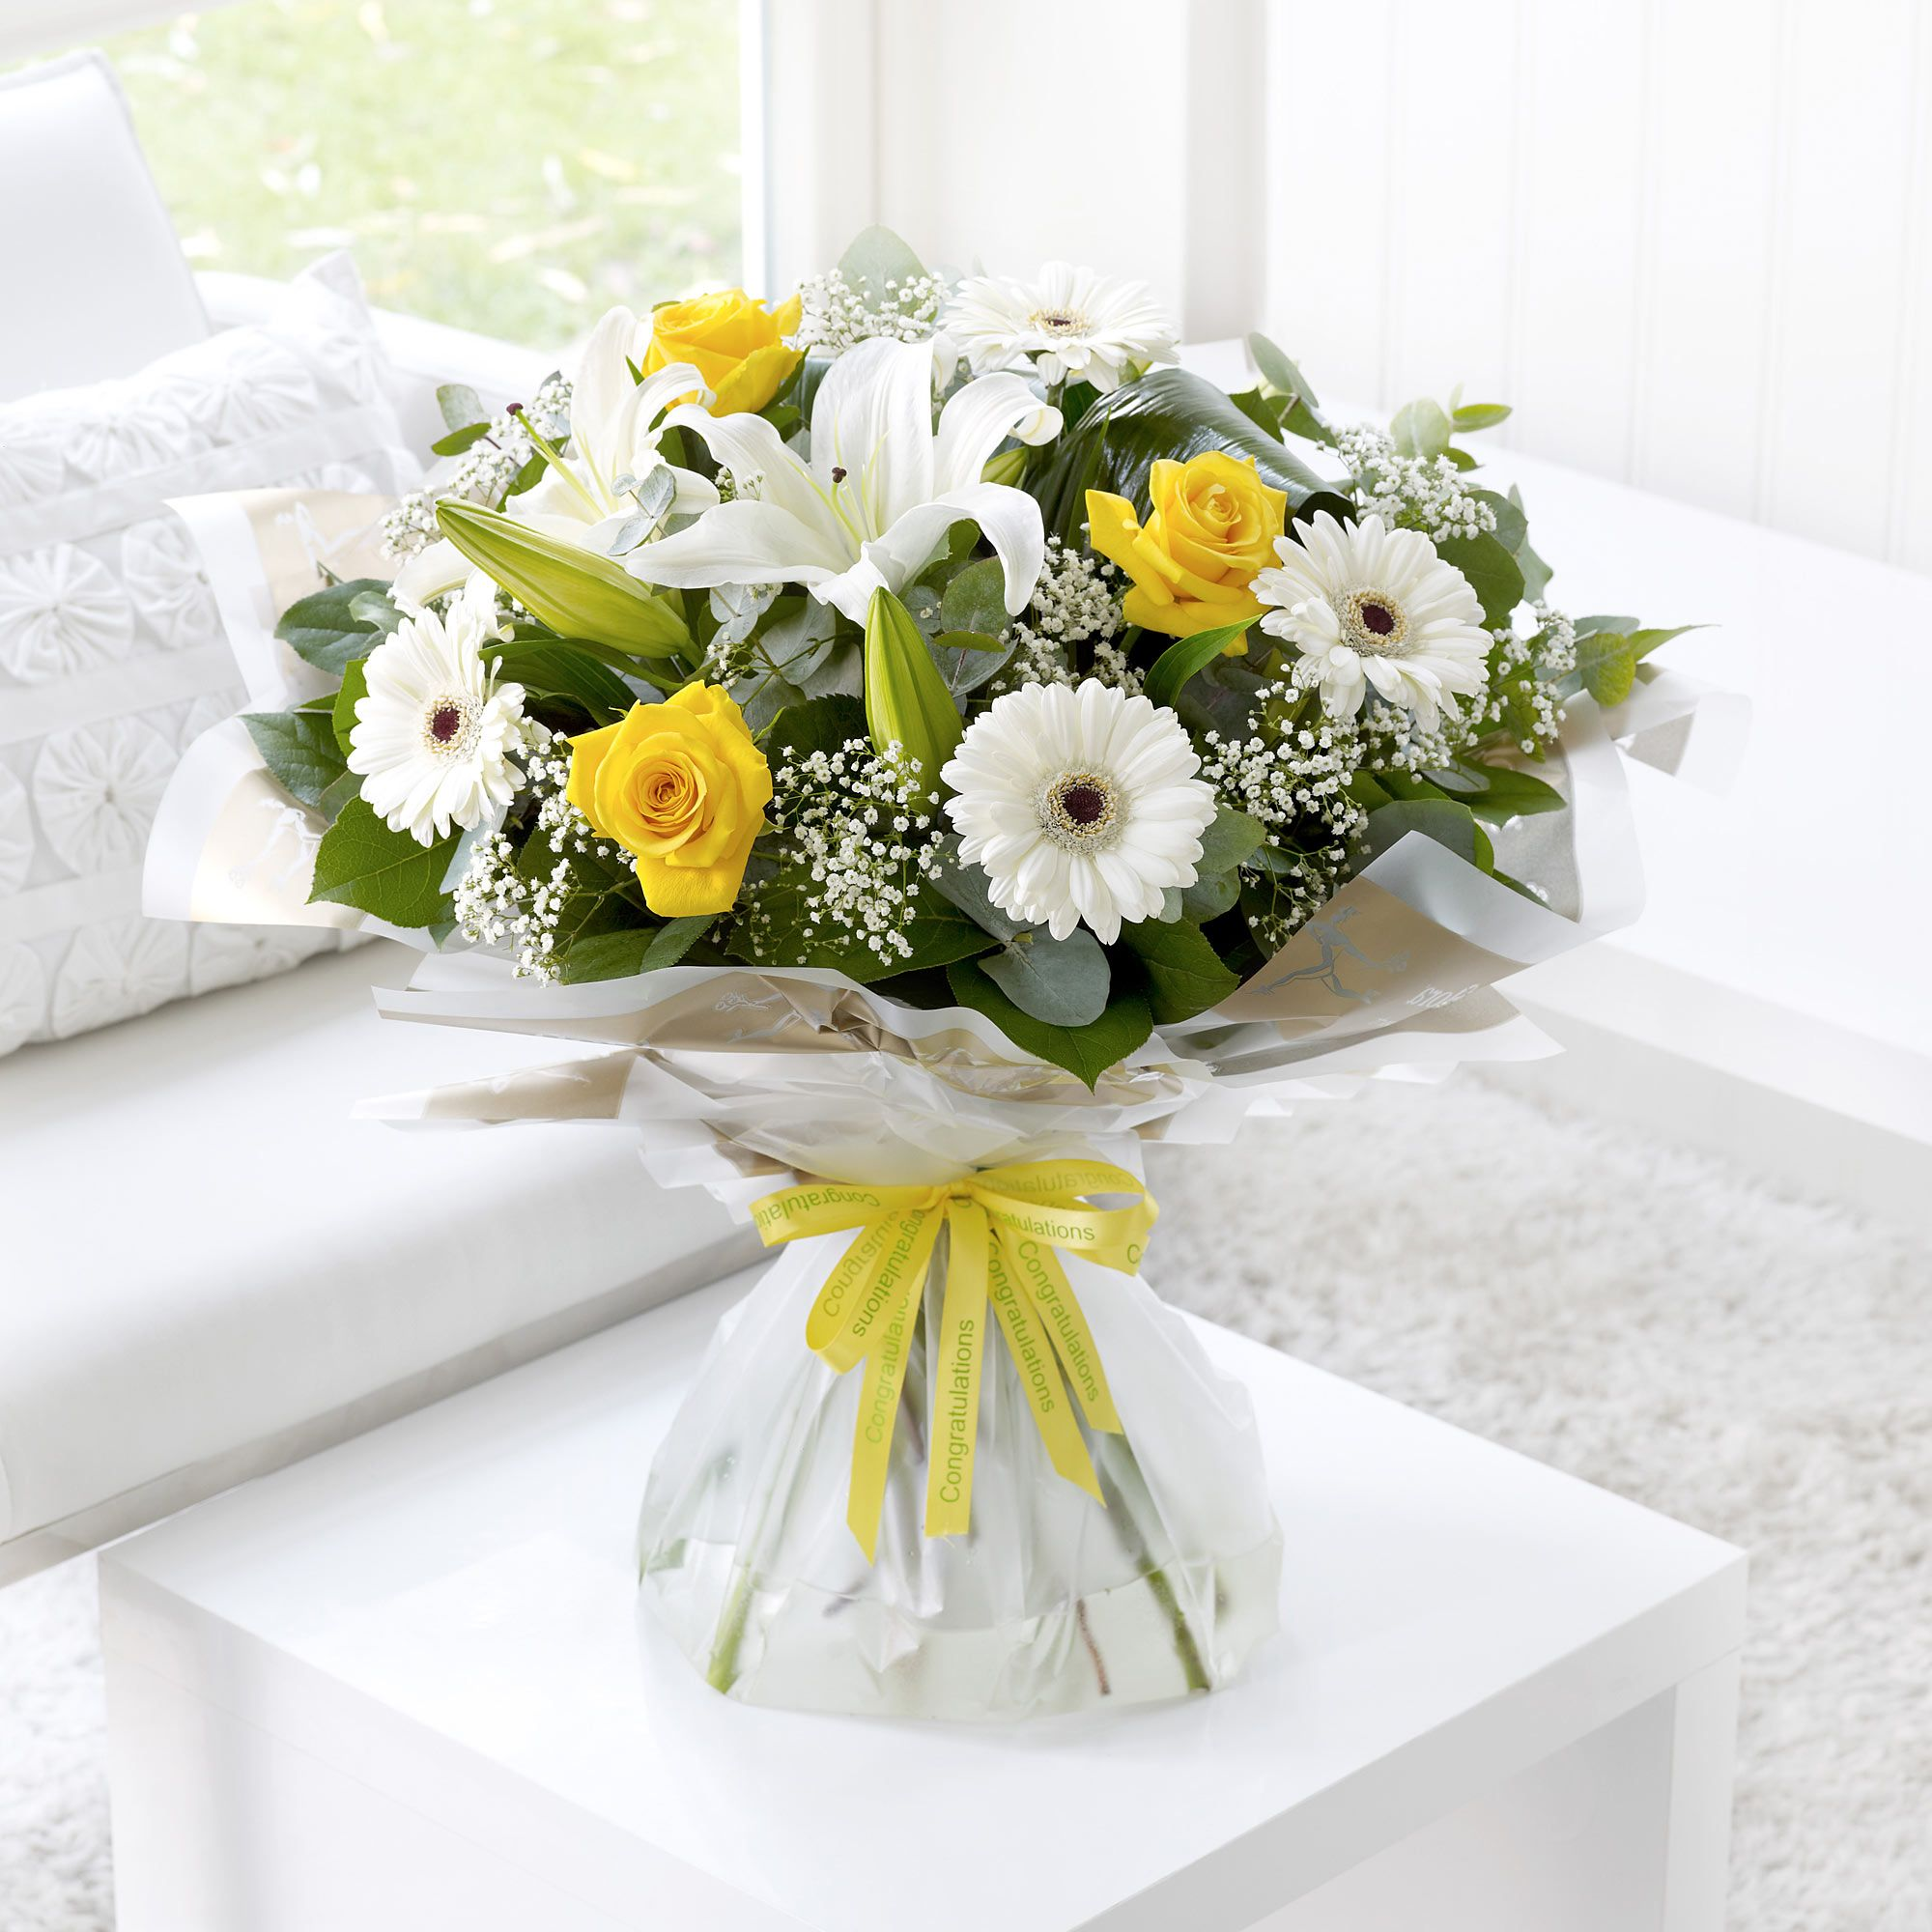 Send your congratulations with this dazzling yellow and